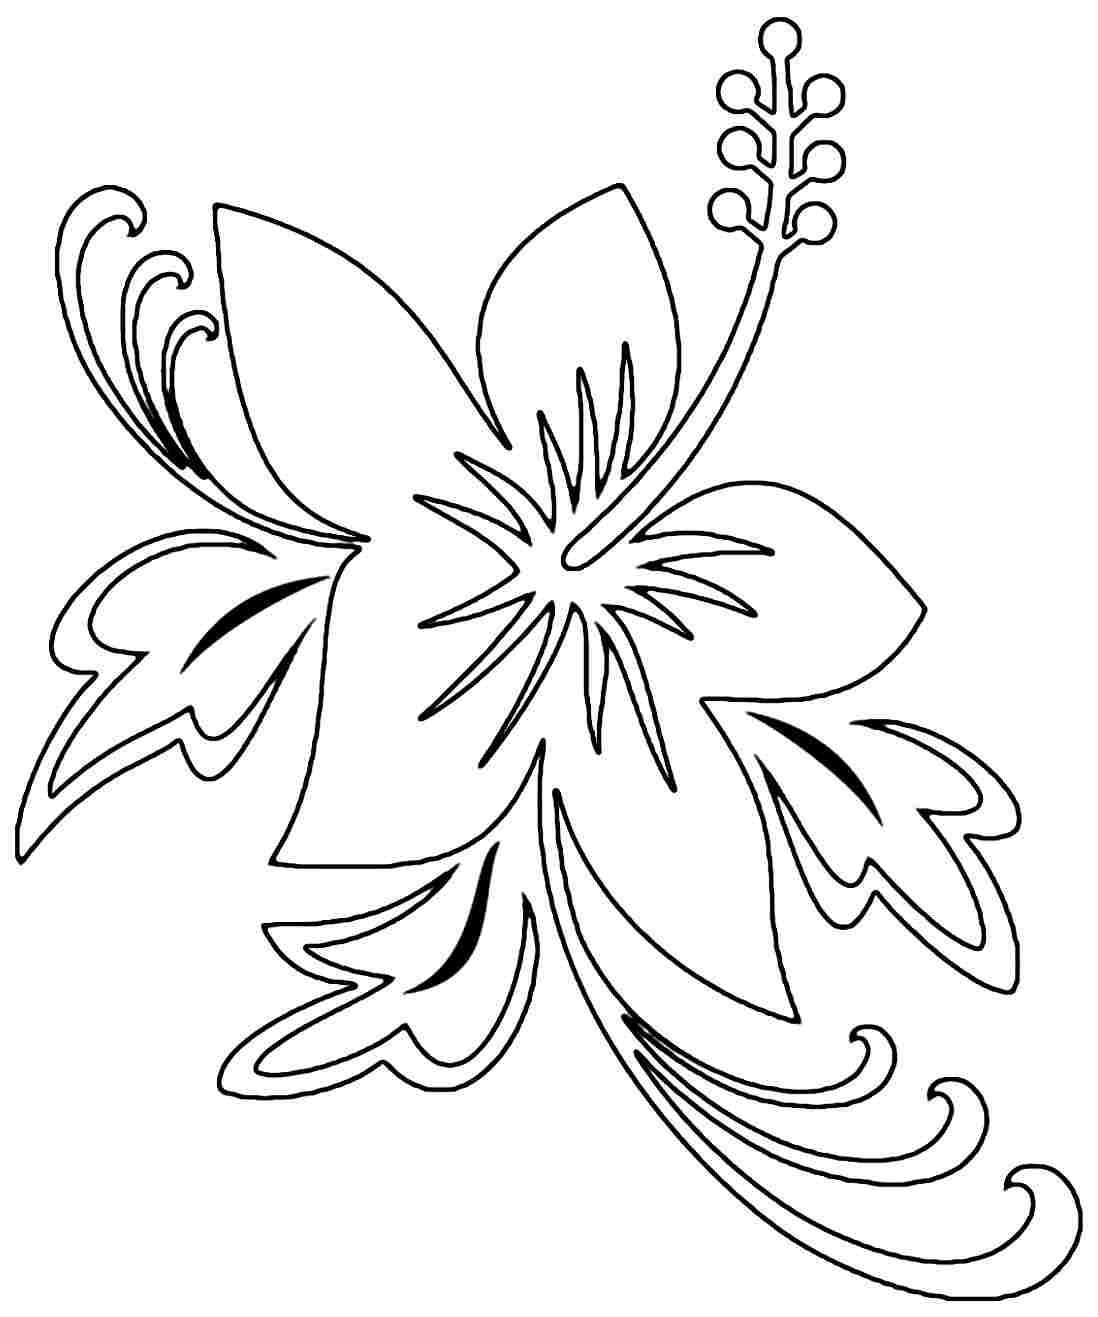 colouring pages hibiscus flower hibiscus plant drawing at getdrawingscom free for pages hibiscus colouring flower